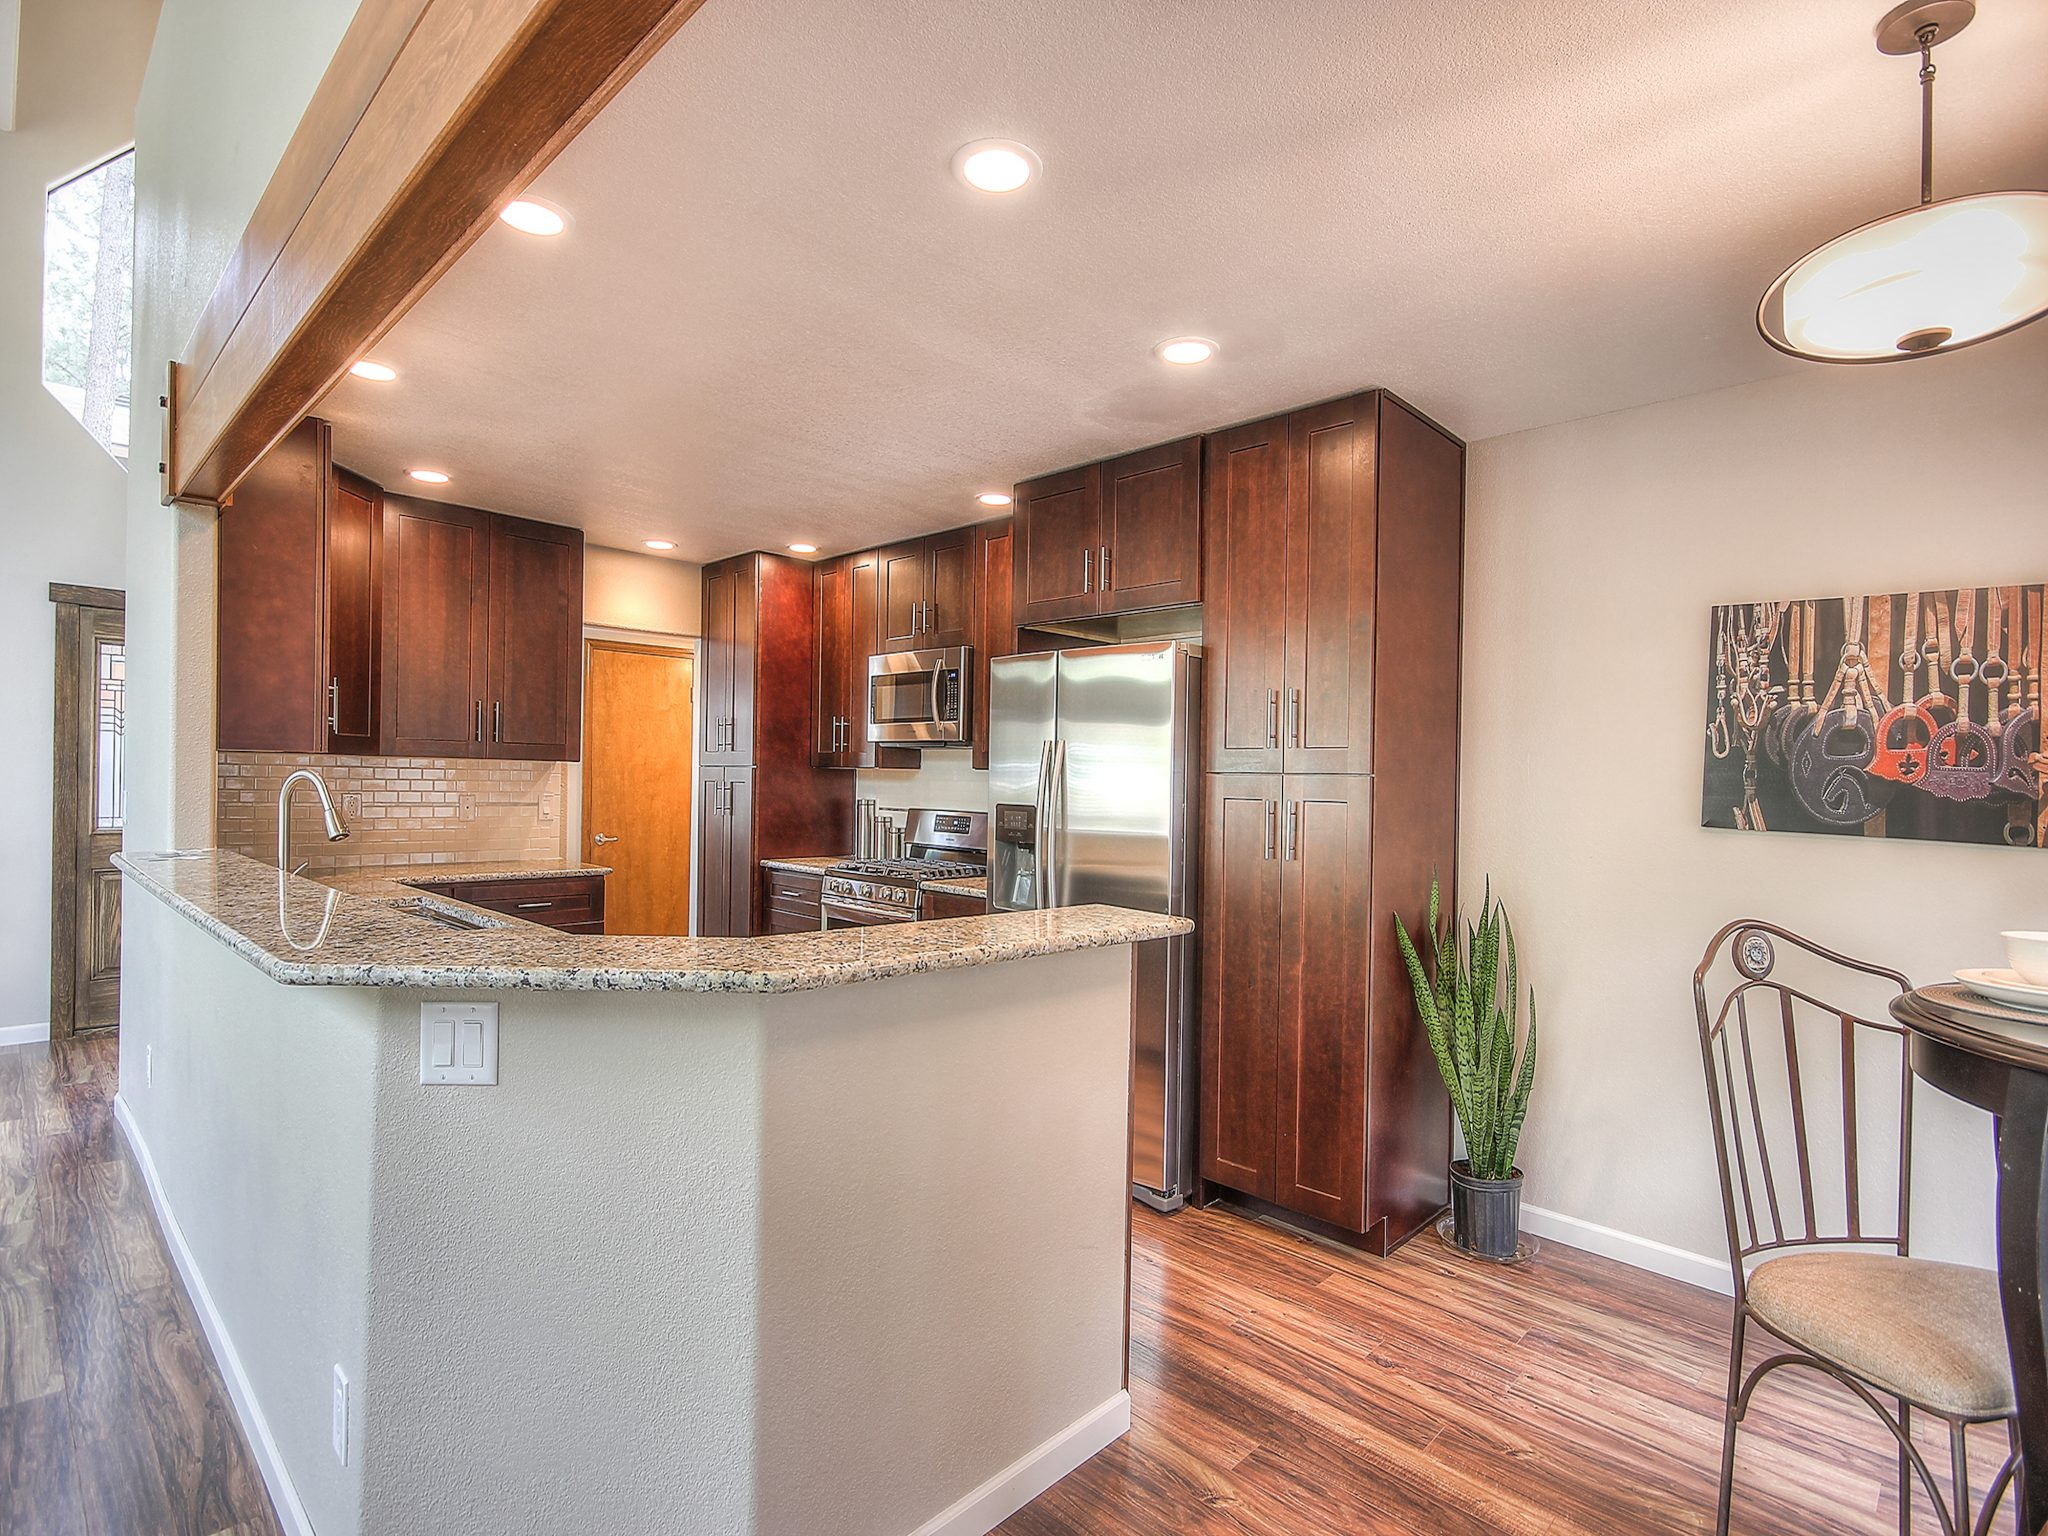 Interior shot of a newly remodeled kitchen with dark wooden cabinets and granite countertops